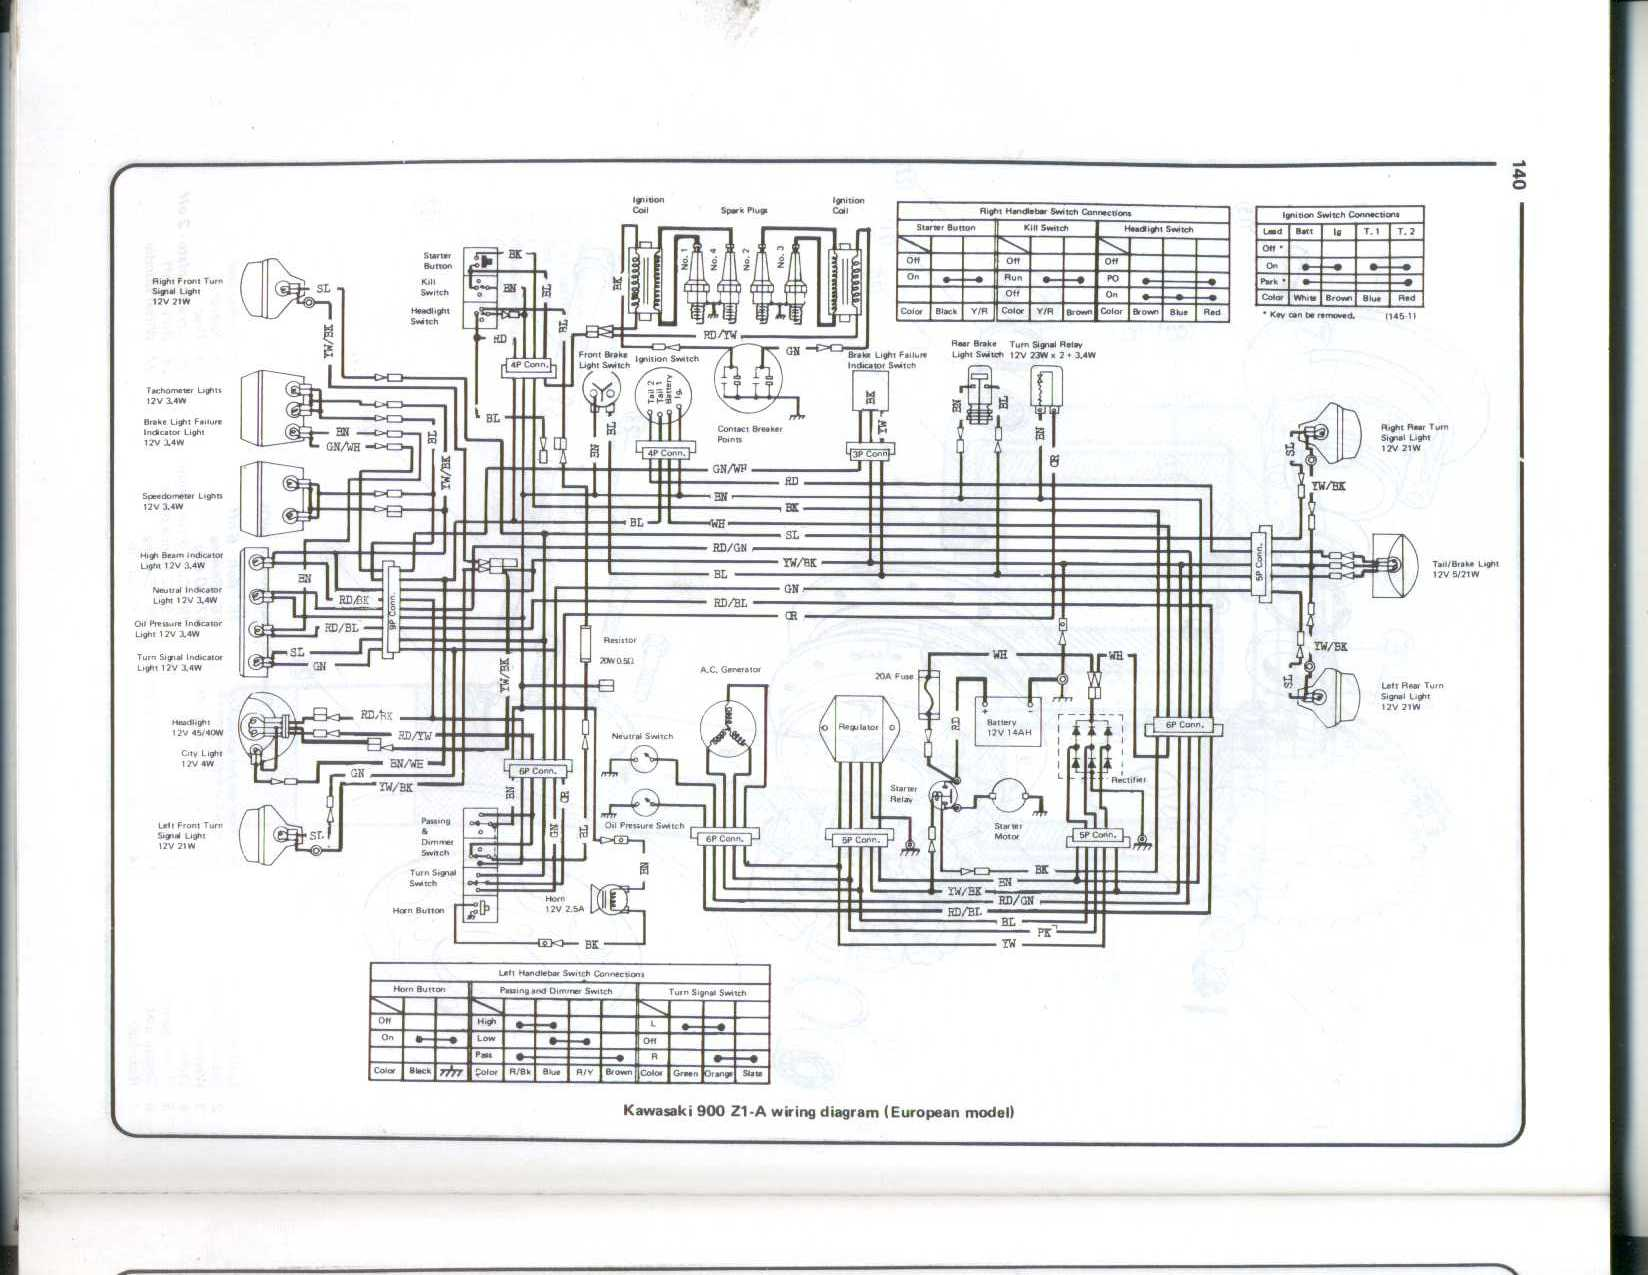 index of kz electrical rh kz900 com kawasaki z1 900 wiring diagram avic z1 wiring diagram